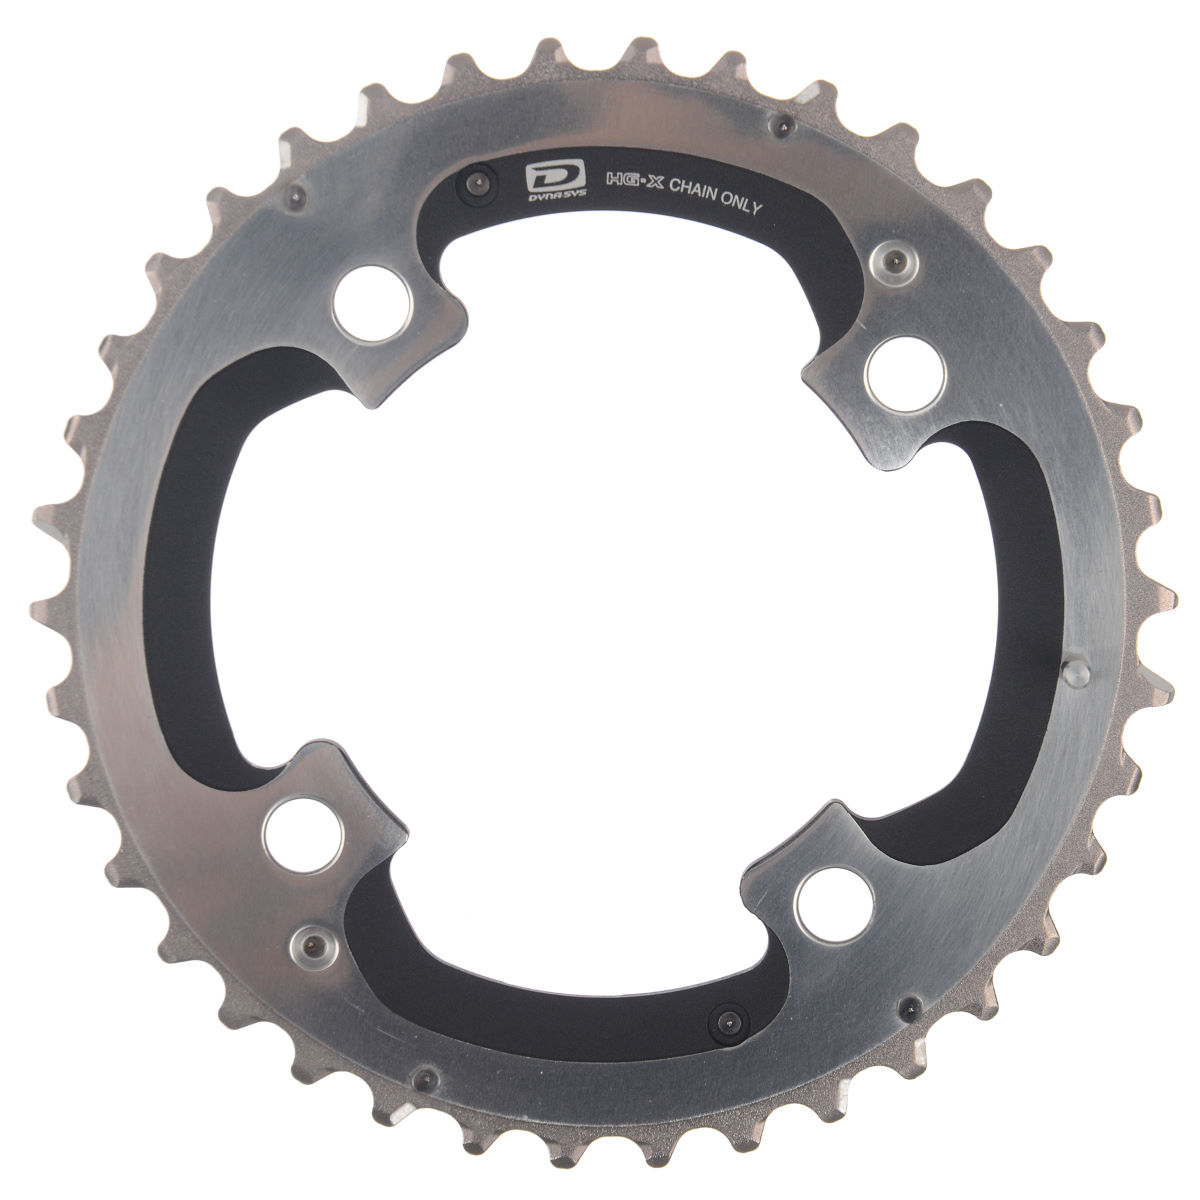 Plateau double Shimano XTR FCM980 (10 vitesses) - 26t 10 Speed